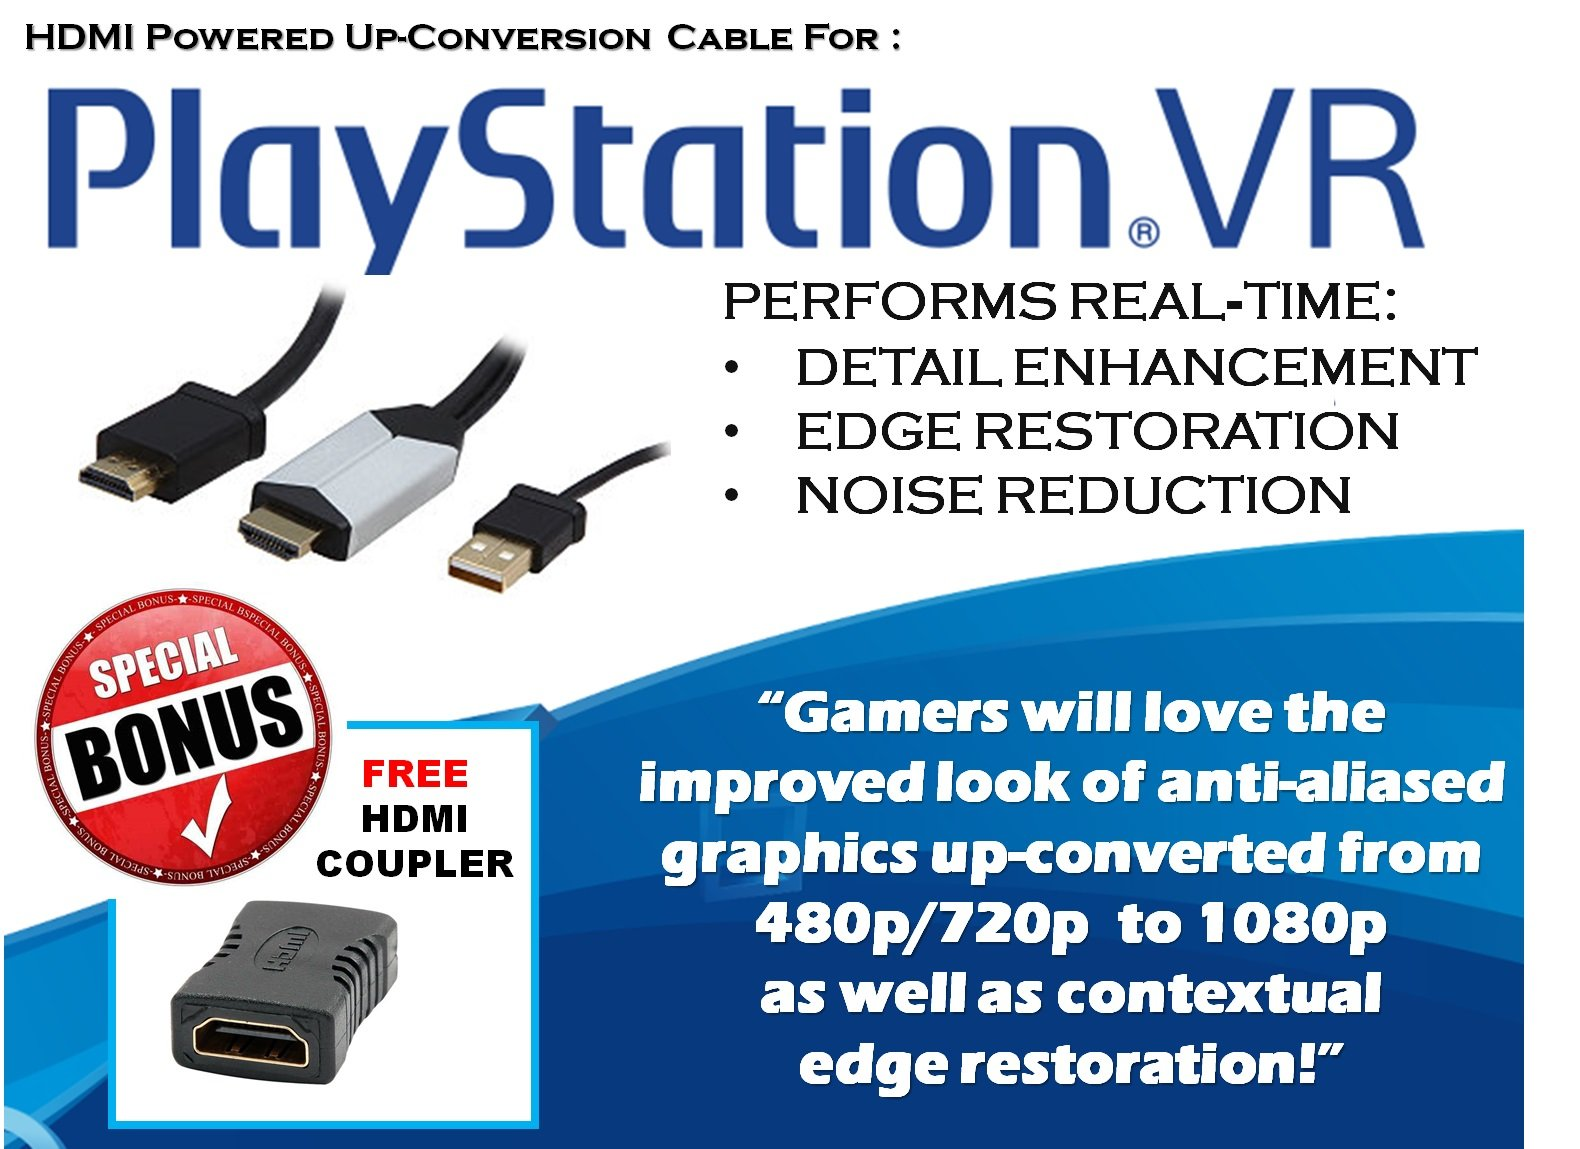 PlayStation VR HDMI Cable by UVision Cable